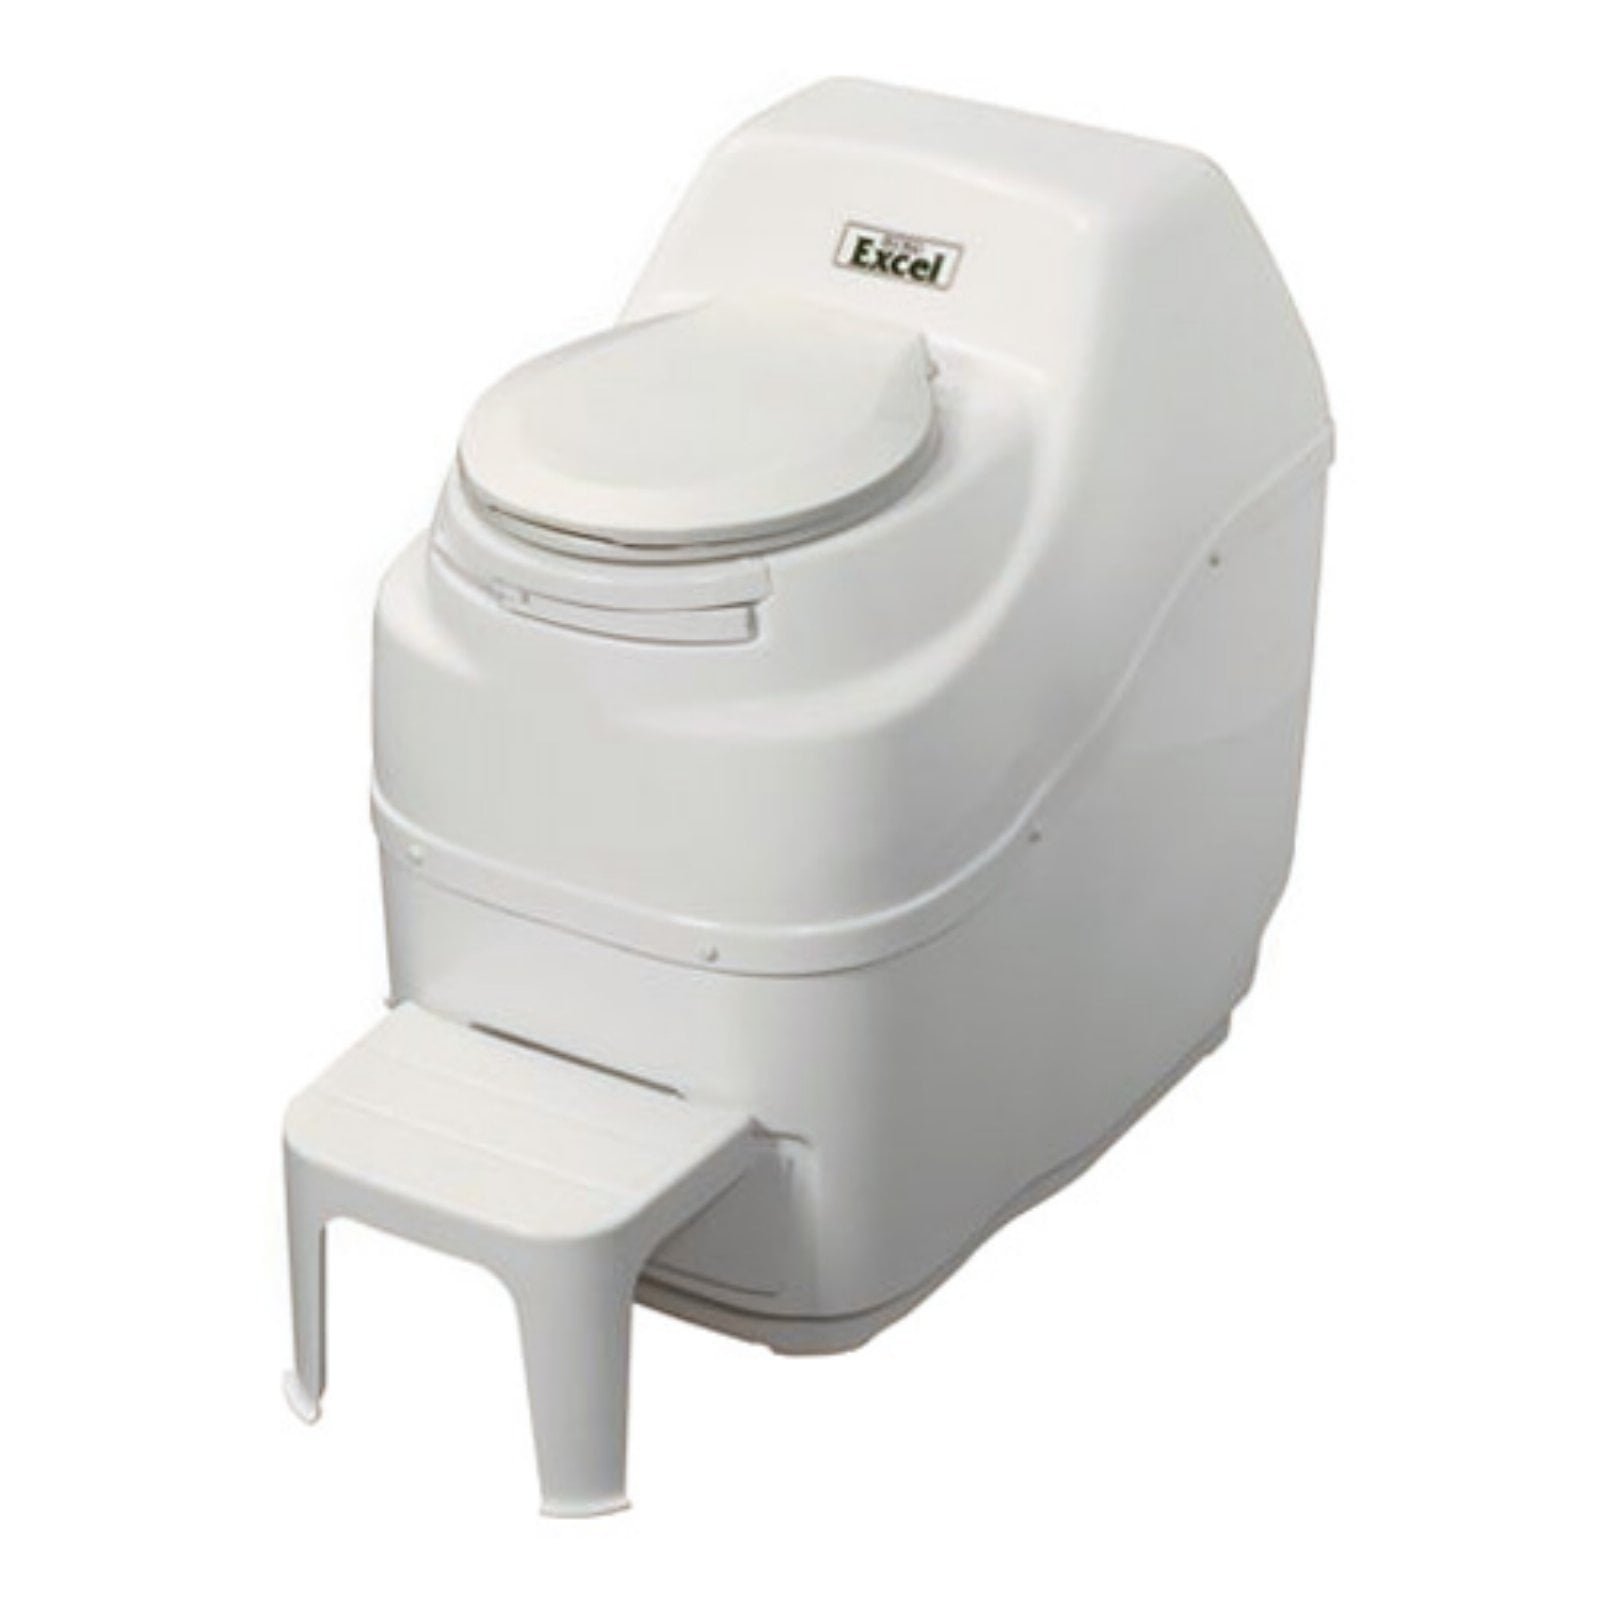 Sun-Mar Excel Electric Waterless Composting Toilet by Sun-Mar Corp.